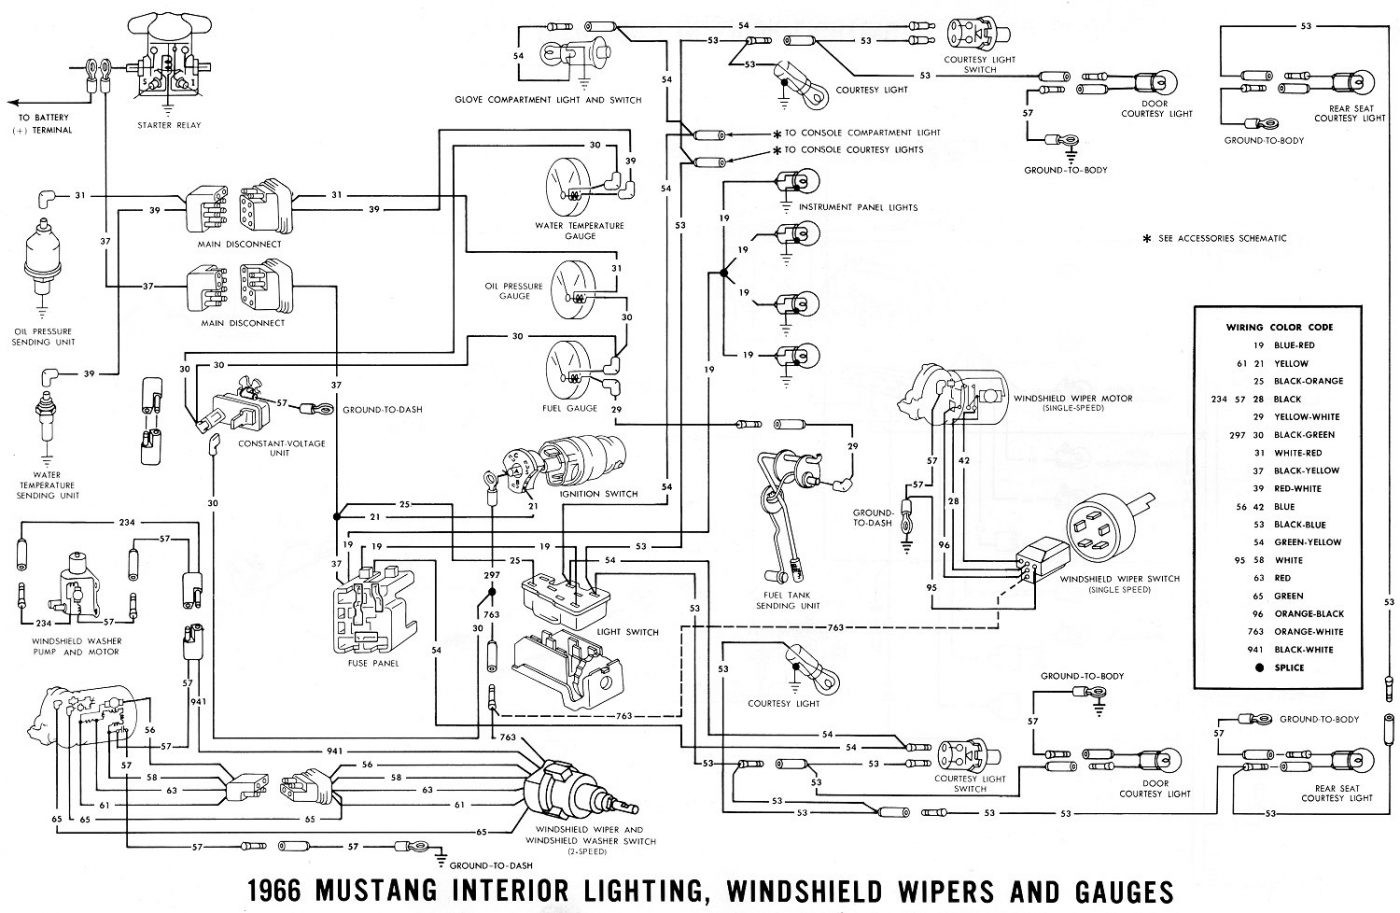 Mazda Protege Hvac System Wiring Diagram Liry Of Diagrams